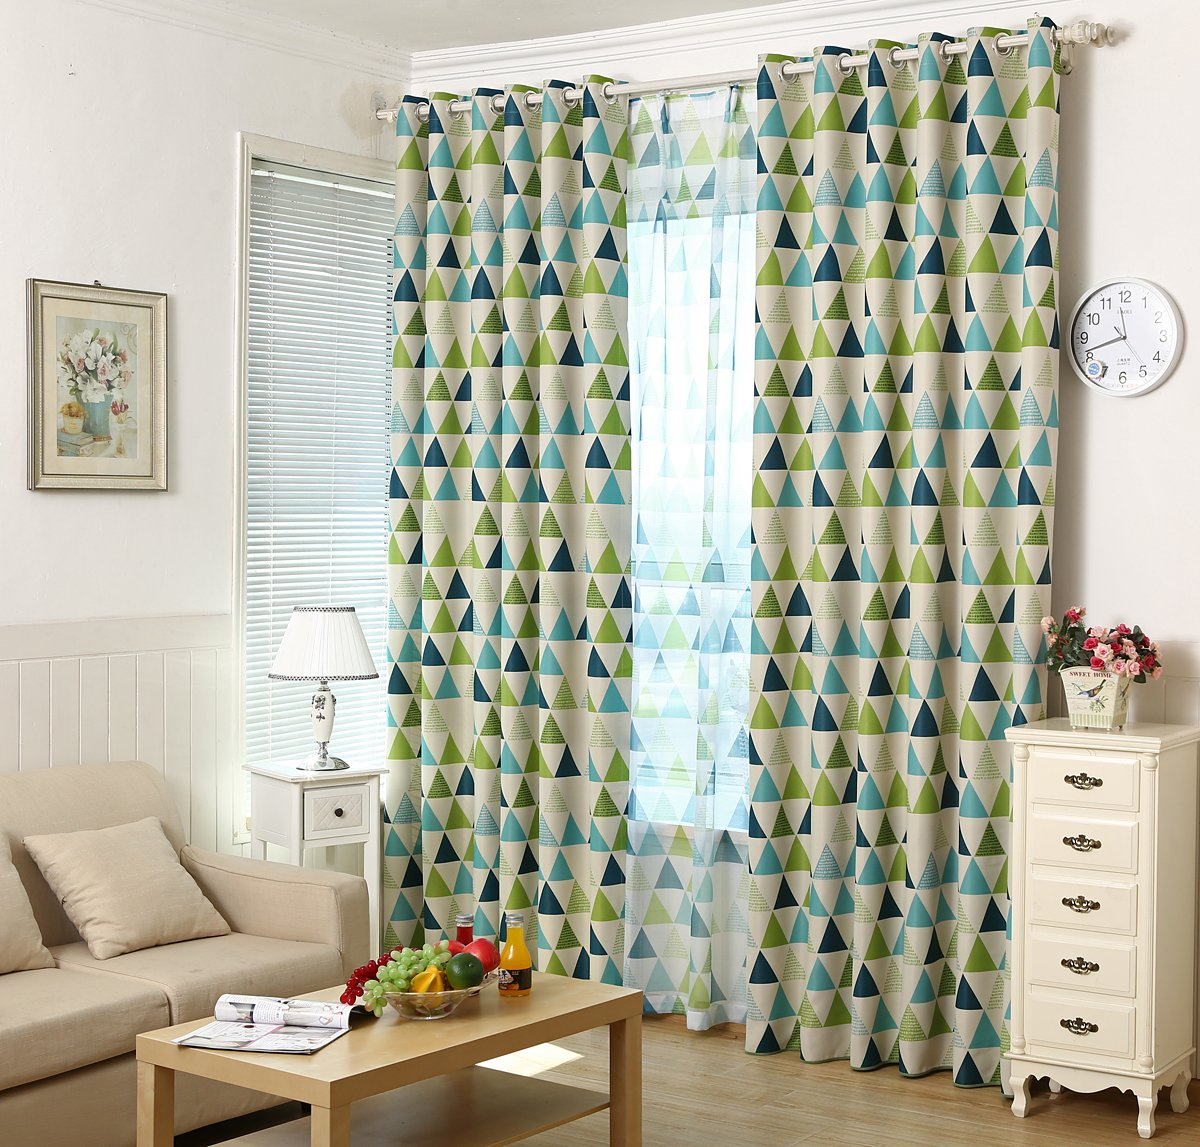 1 Pair Blackout Curtains for Boys Girls Kids Room,Geometric Triangle Style,Grommet Top (39 by 84 X2, Green) MYRU